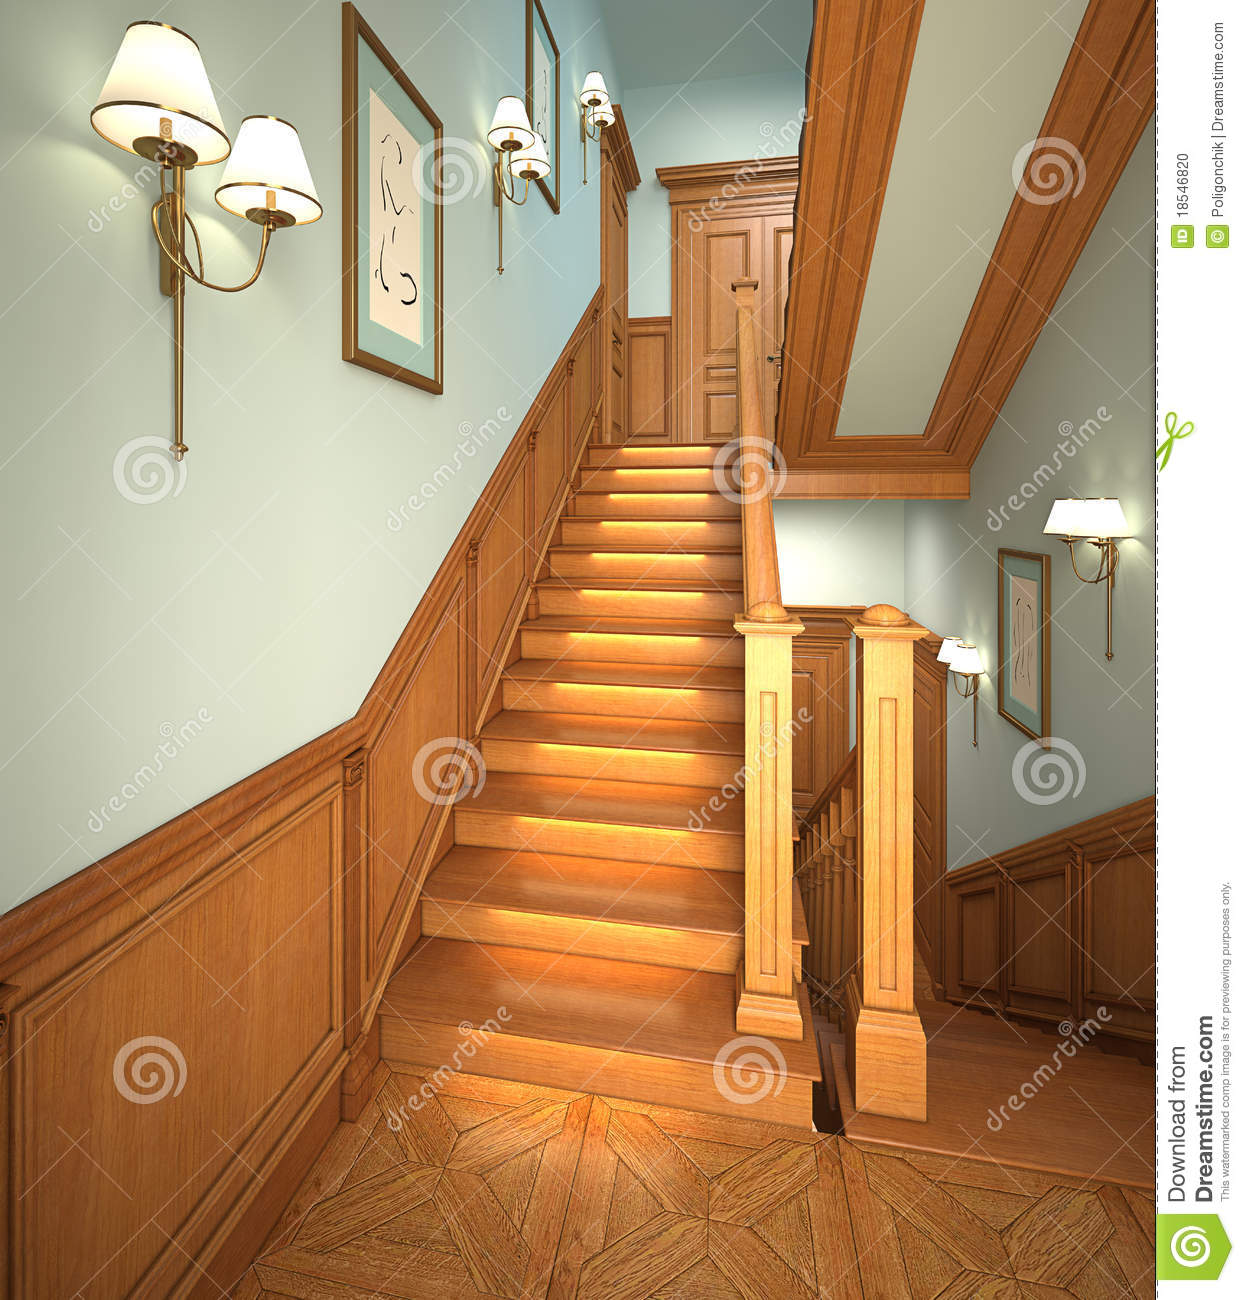 Wood stairs in the modern house stock photo image 18546820 - Escaleras modernas interiores ...